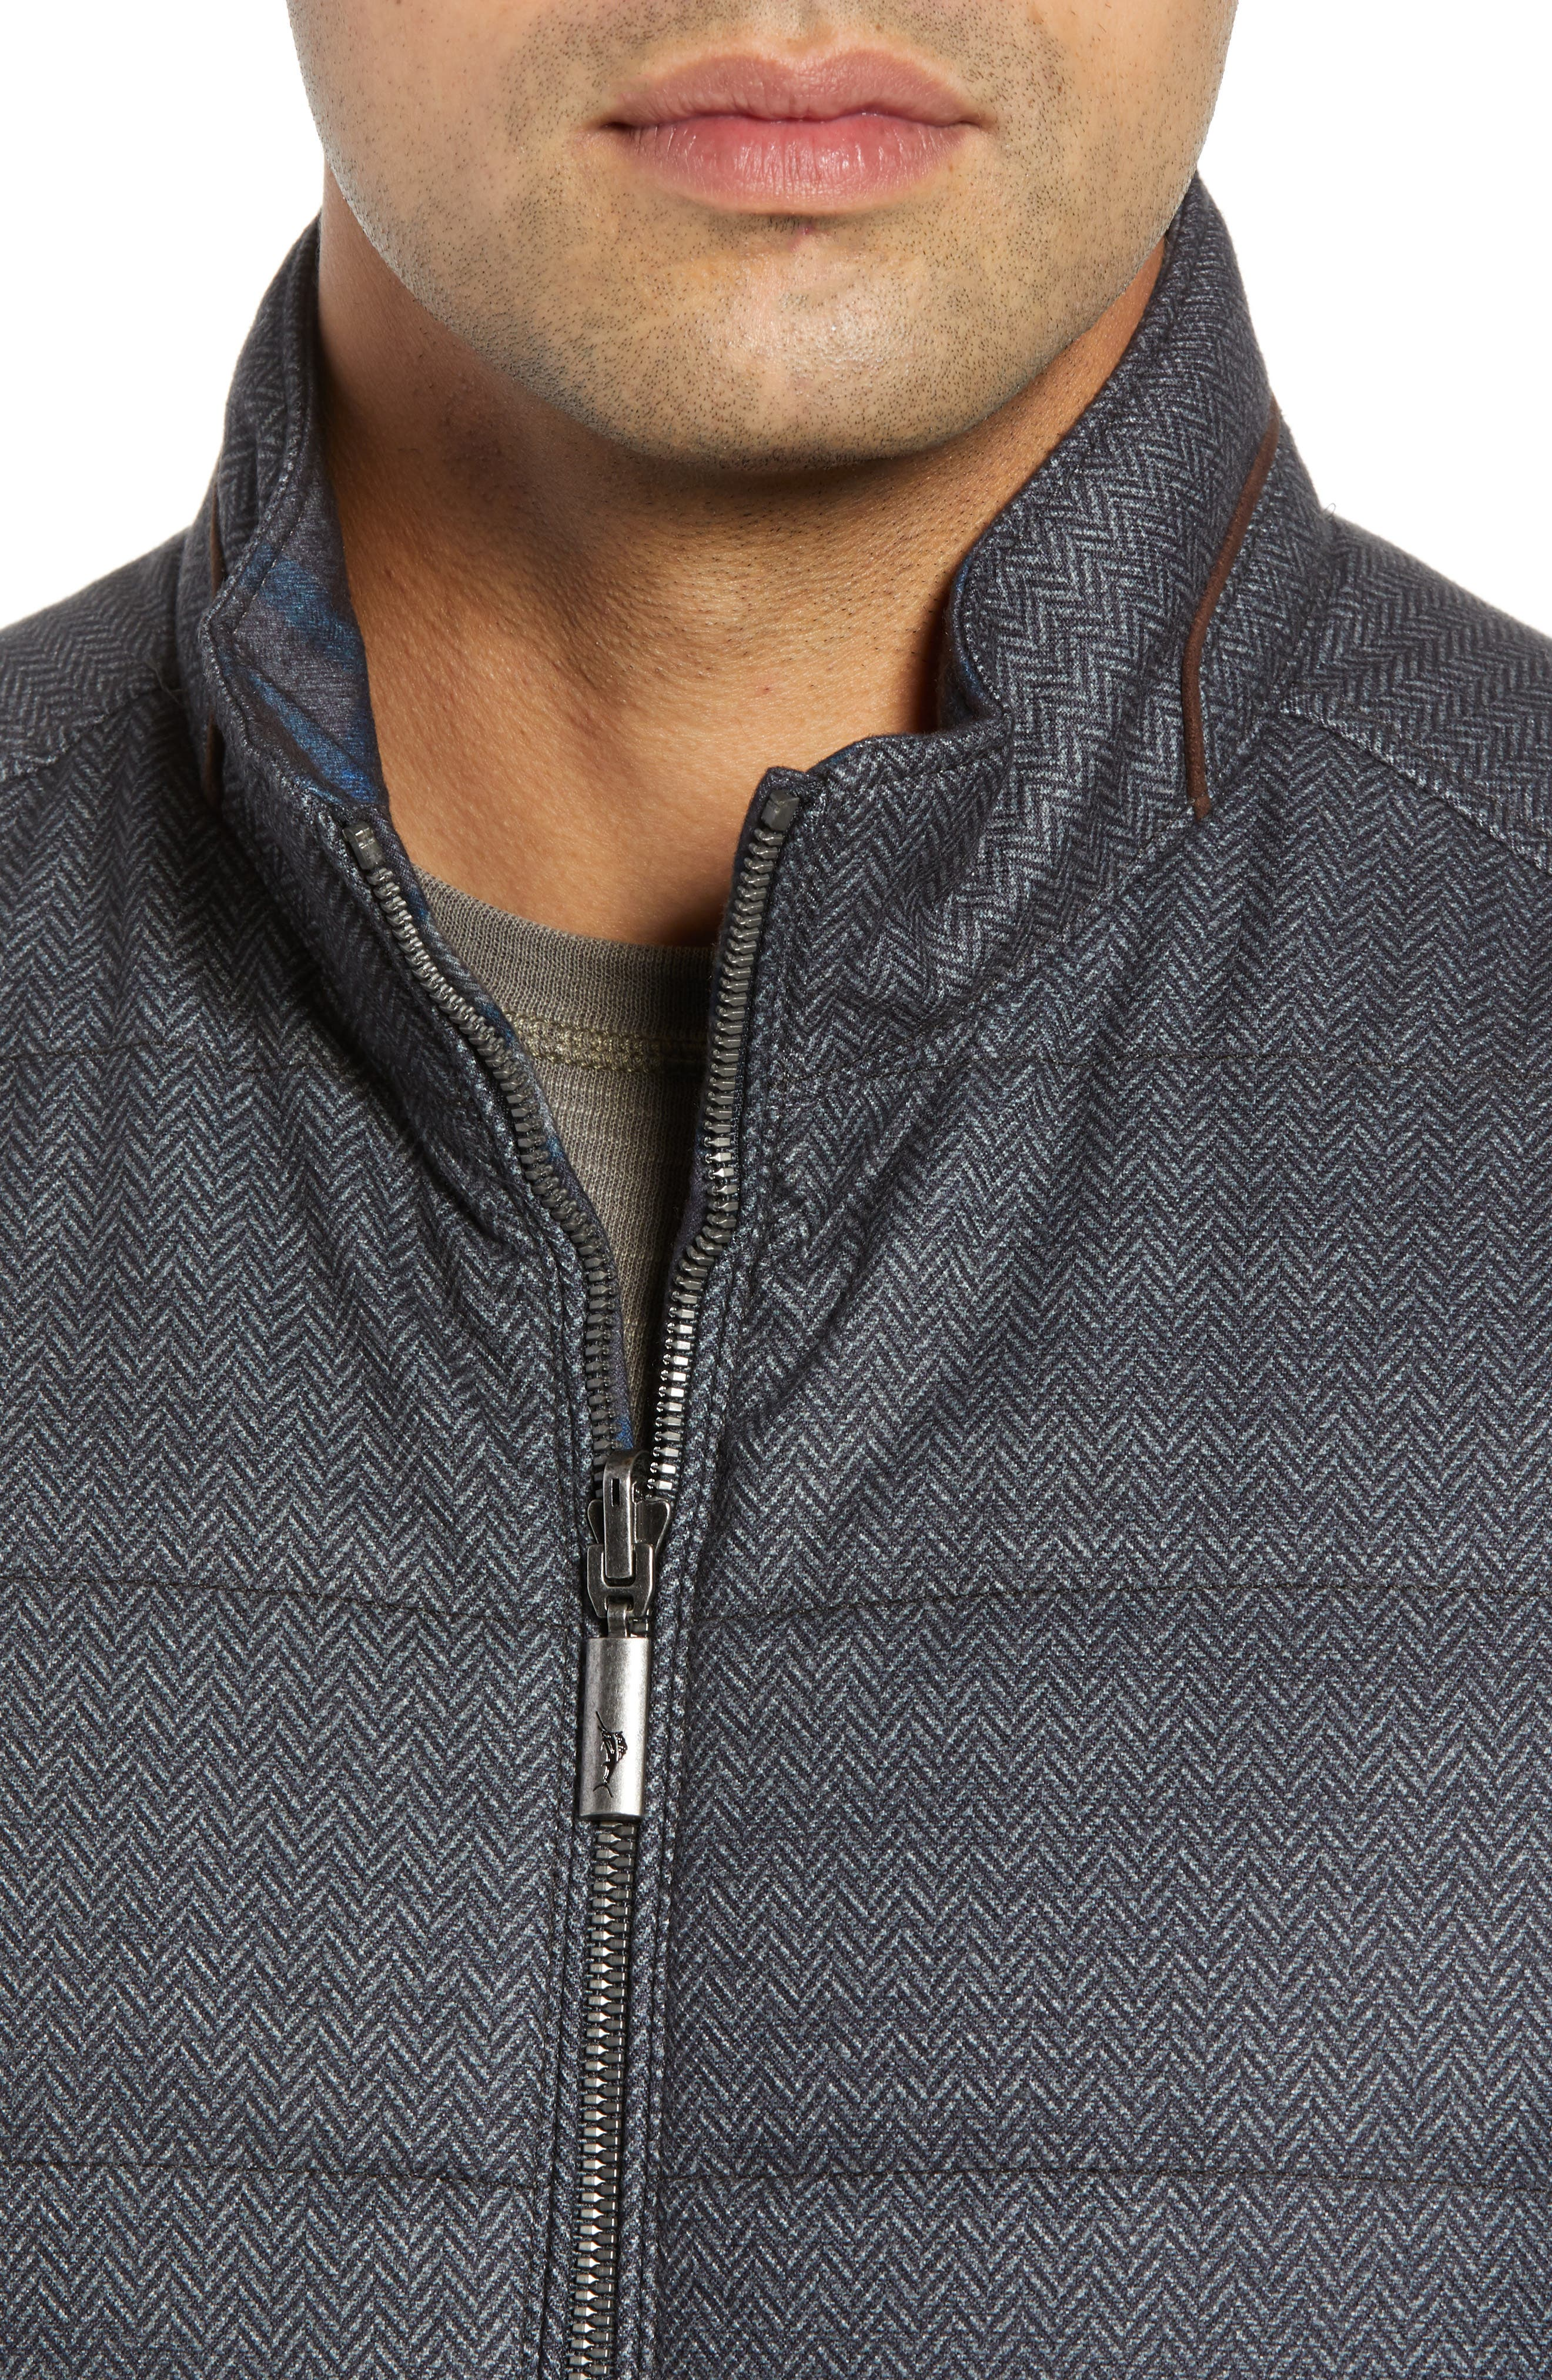 Dublin Duo Reversible Quilted Vest,                             Alternate thumbnail 5, color,                             SHADOW